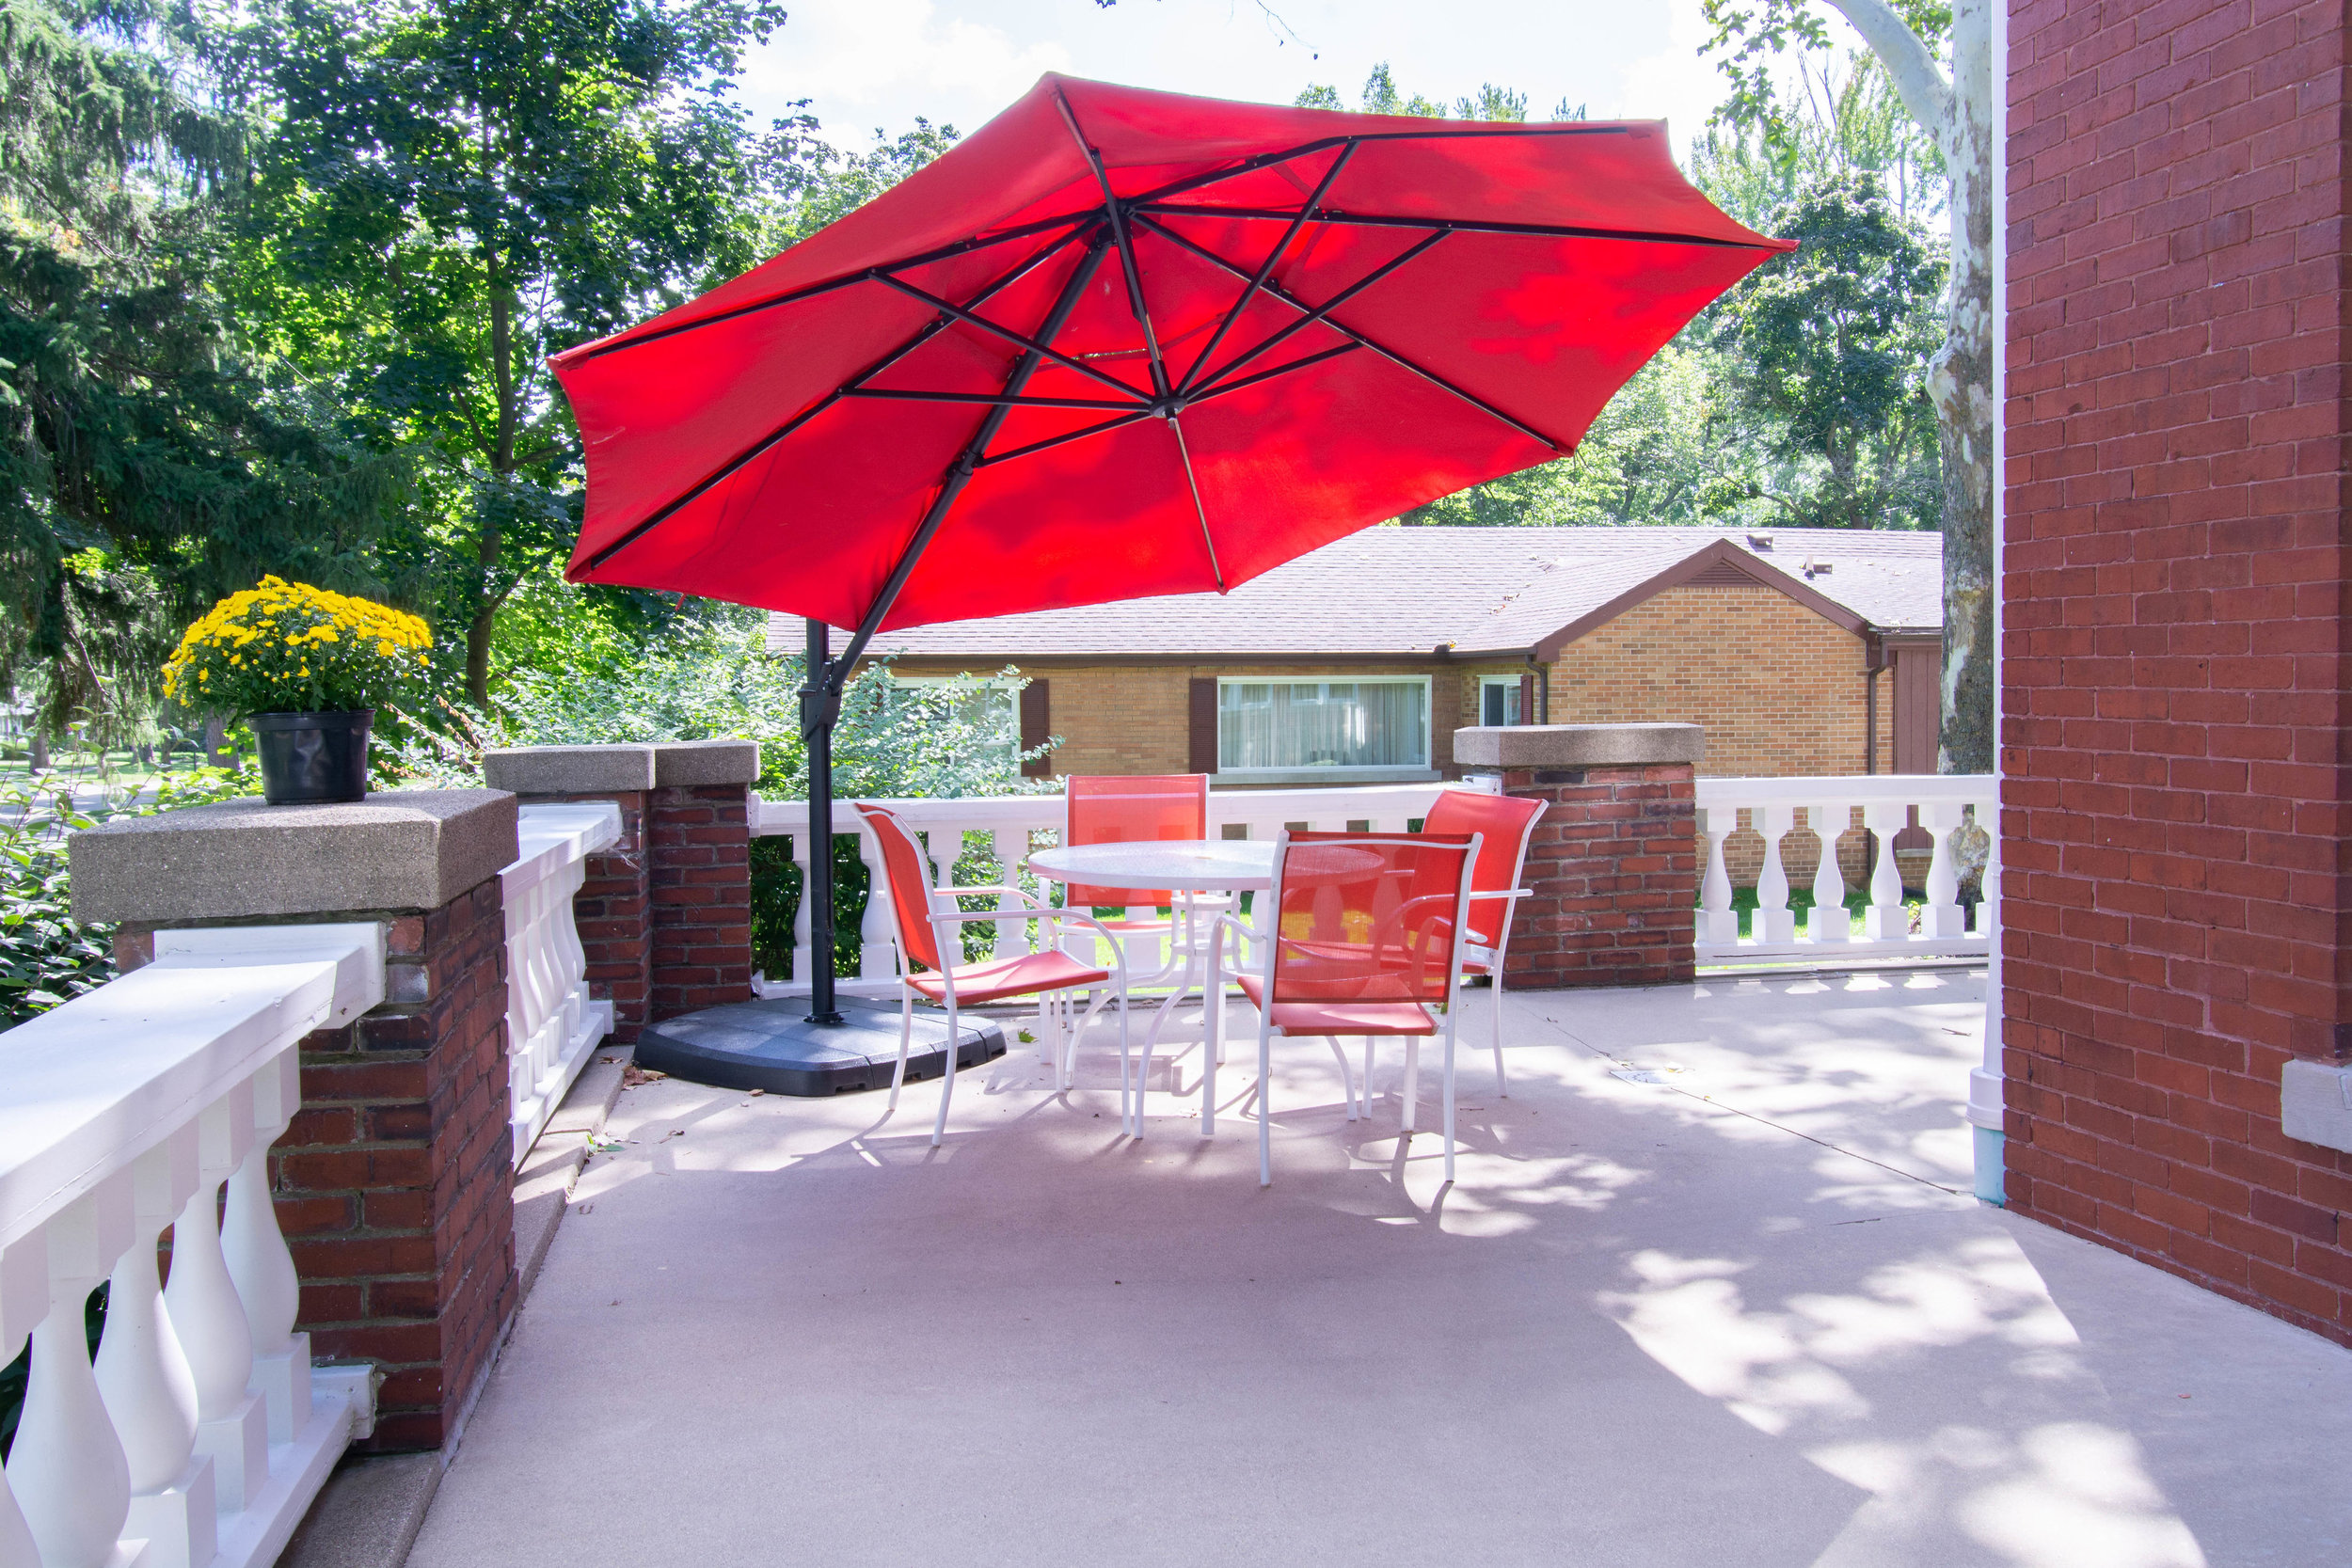 "<img alt= ""Large red umbrella and patio table with four chairs on front porch"" />"